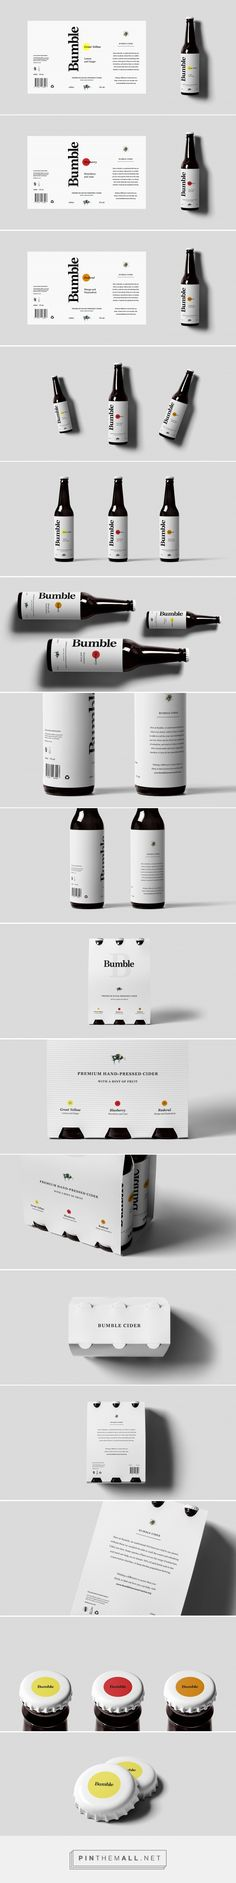 Bumble Cider (Concept) - Packaging of the World - Creative Package Design Gallery - http://www.packagingoftheworld.com/2016/11/bumble-cider-concept.html